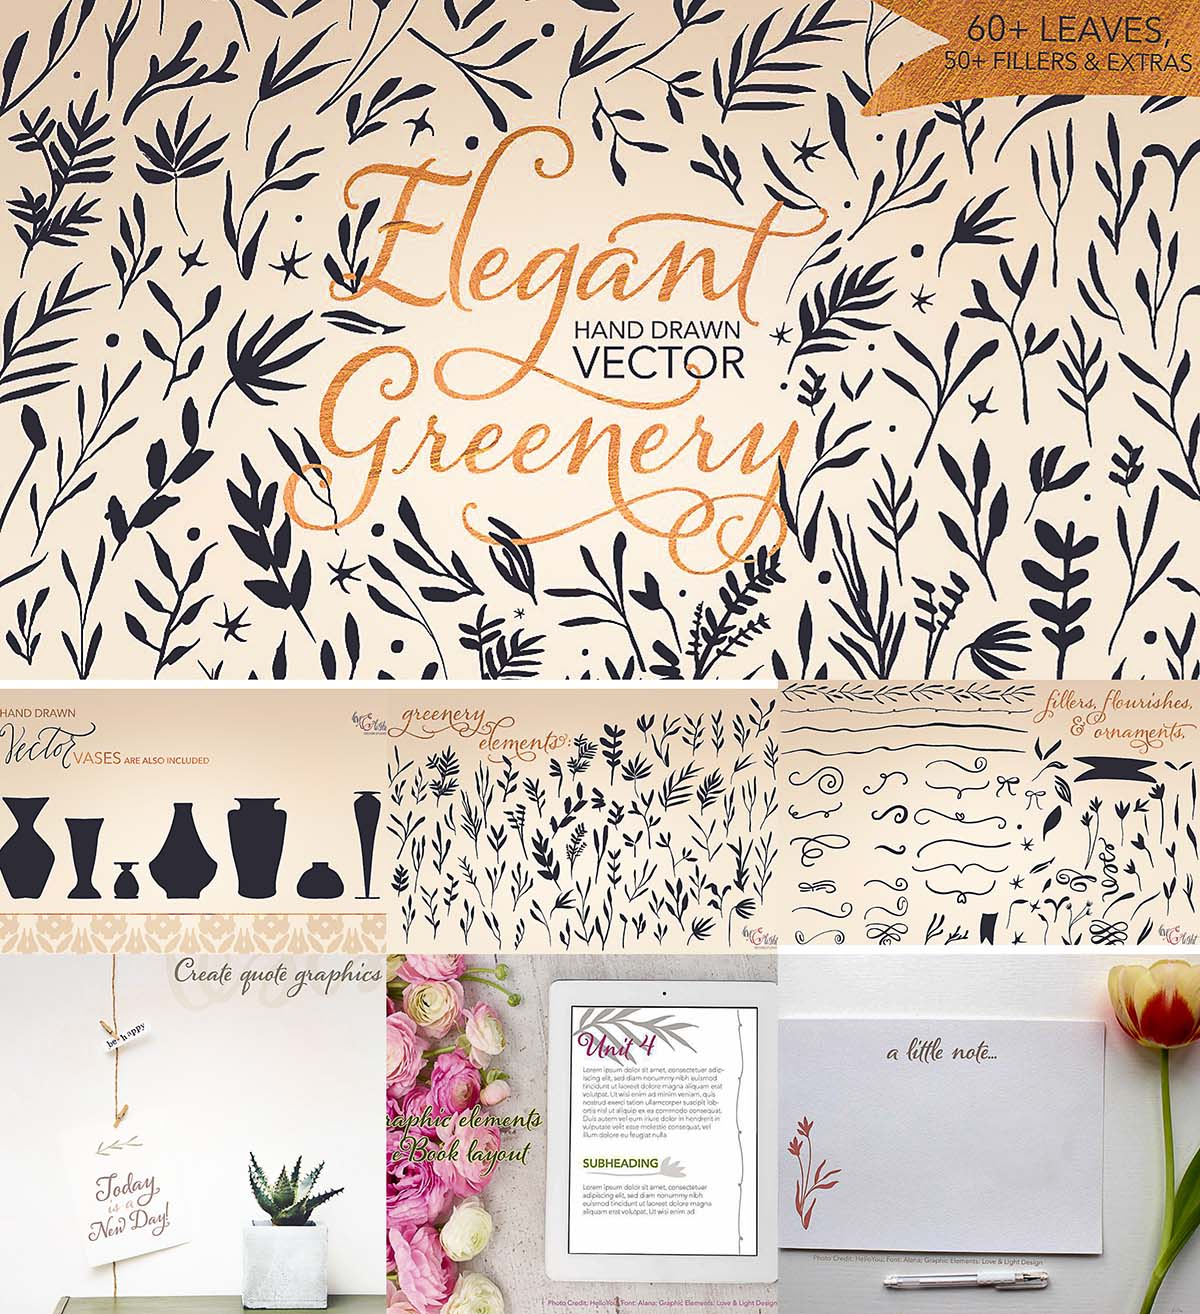 Hand drawn greenery vector set